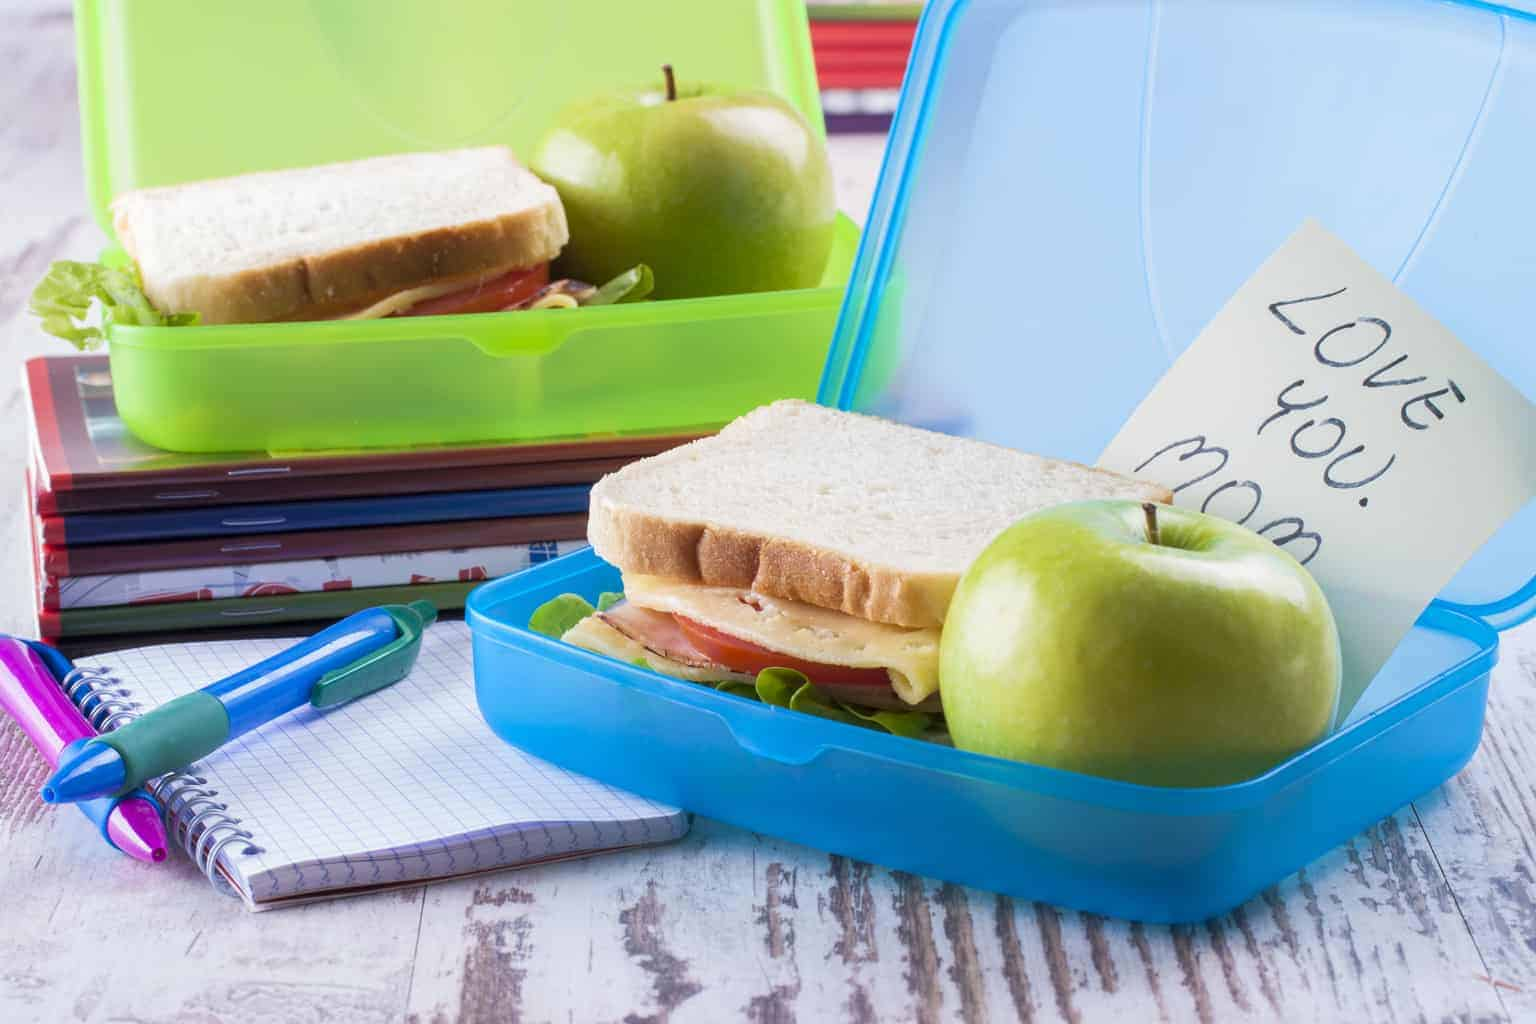 Pack a Waste-Free Lunch